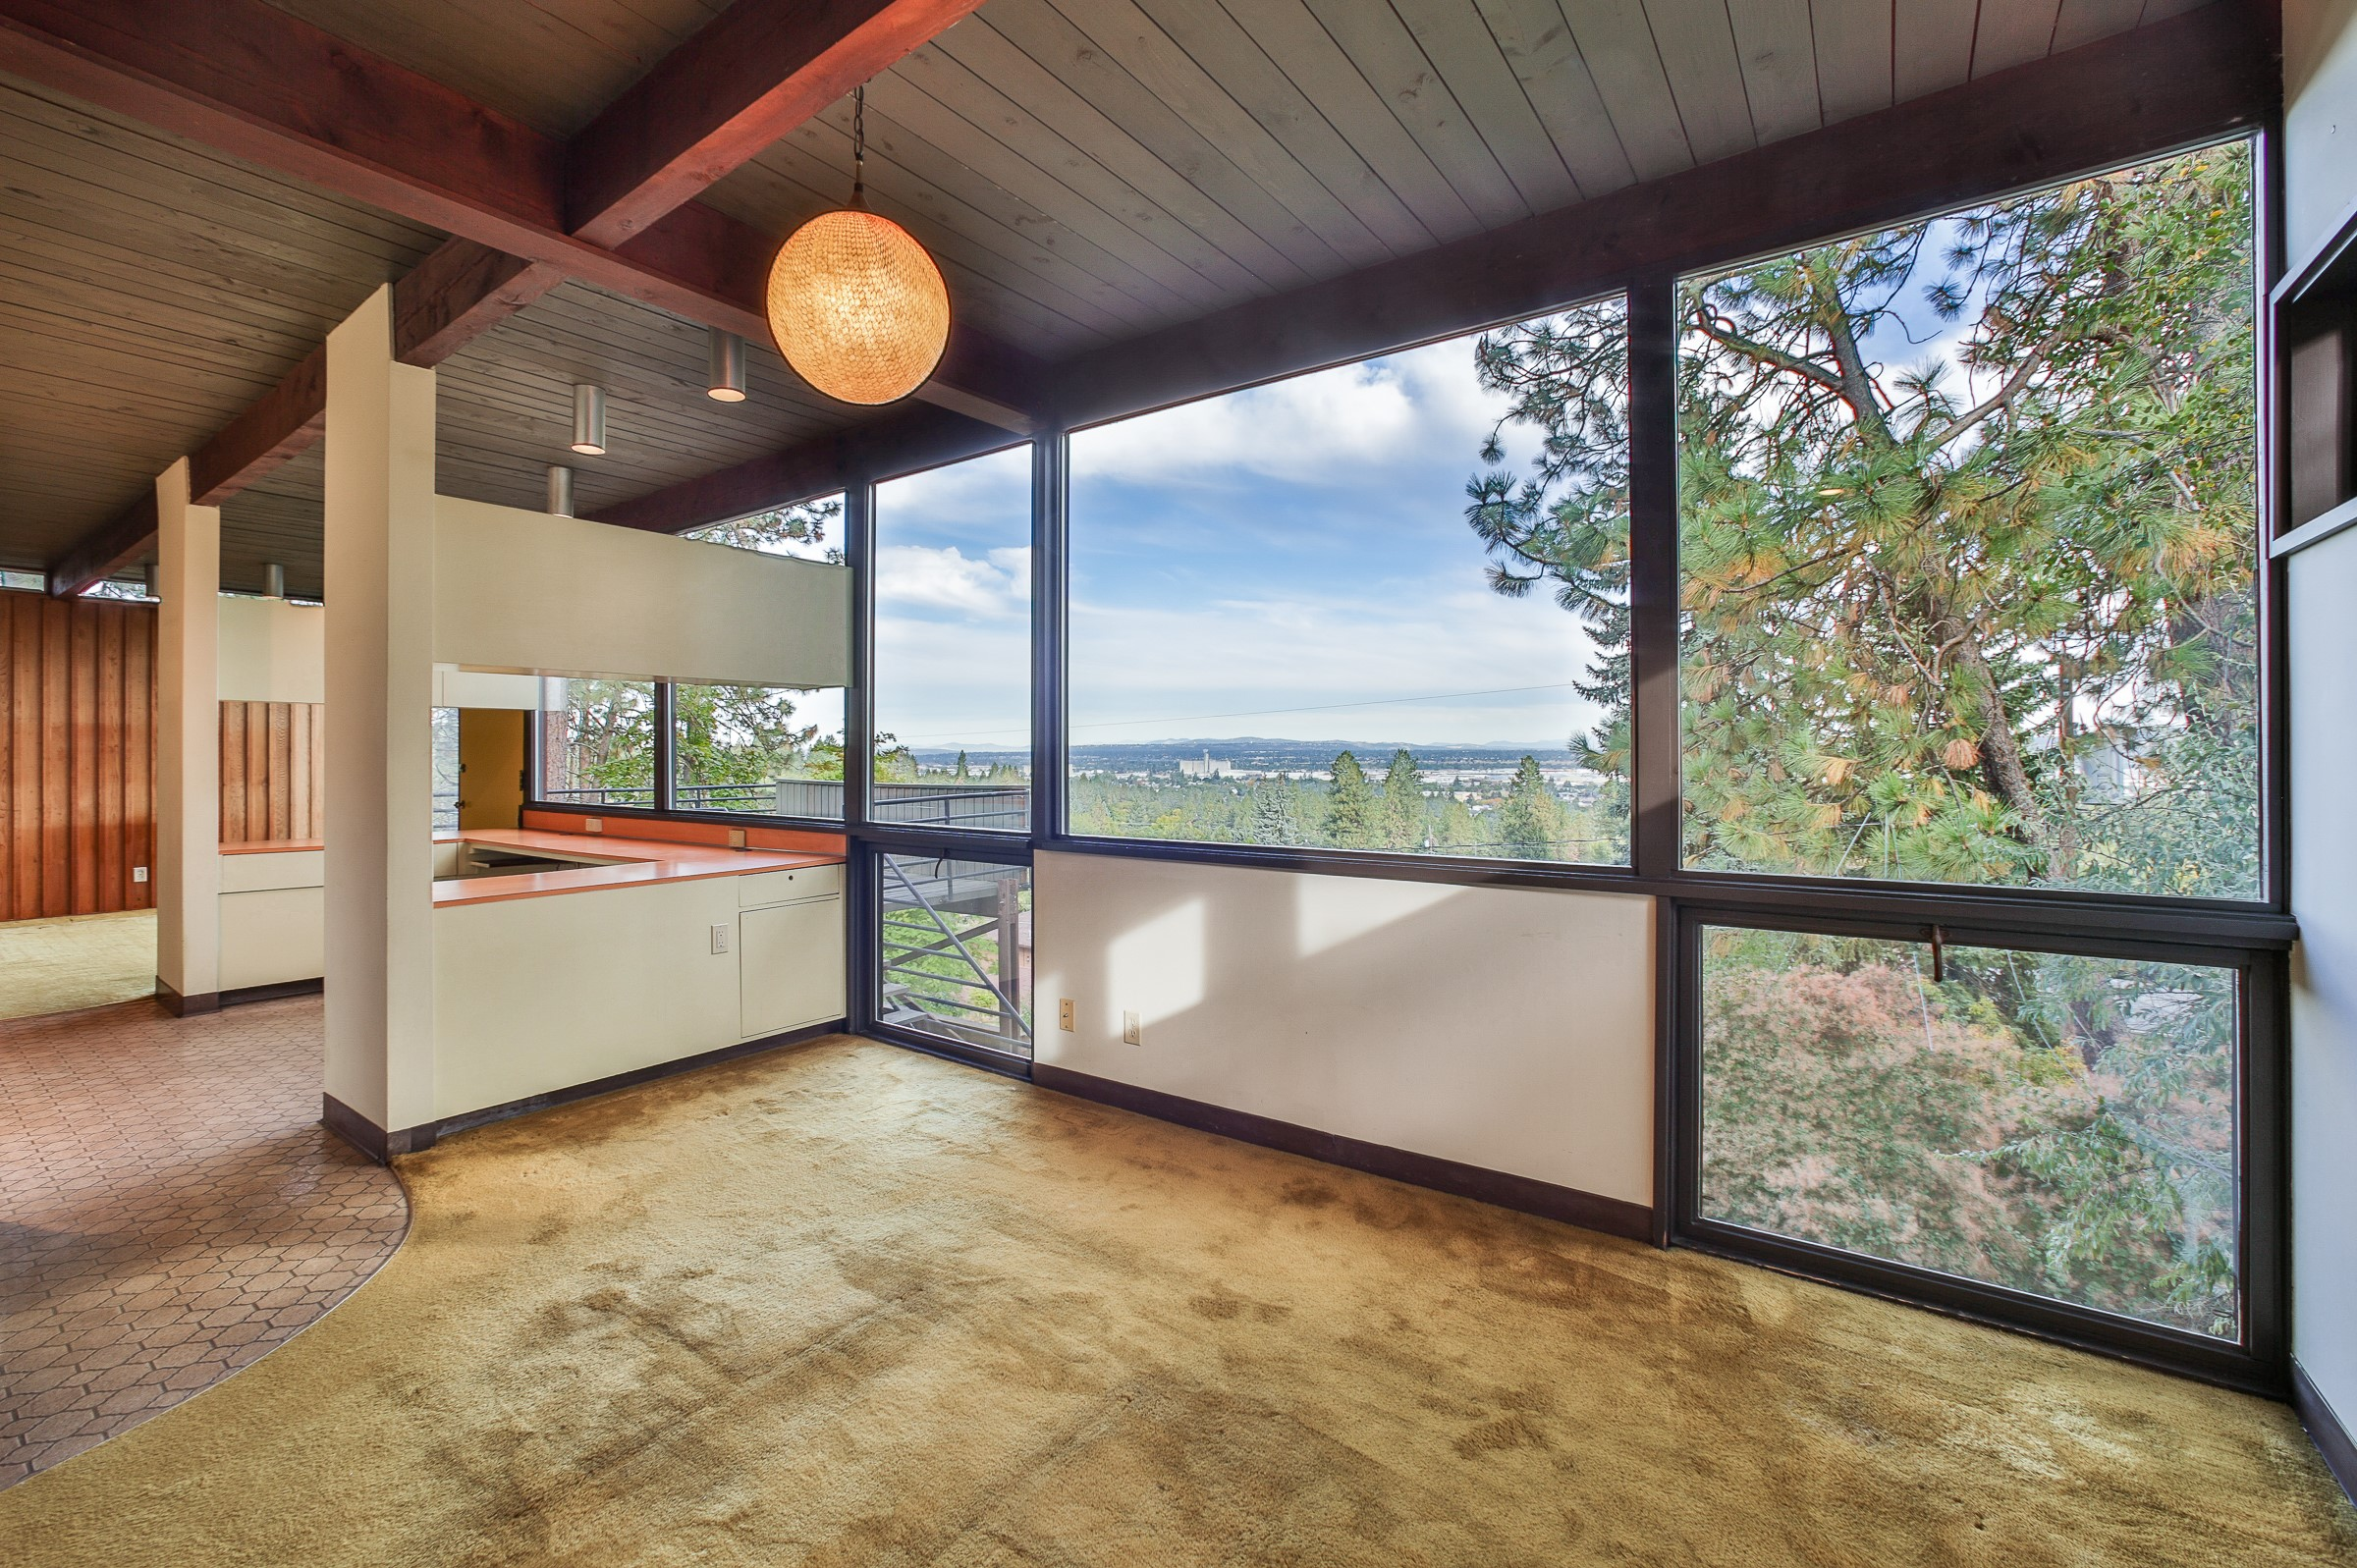 Architecture together with 1920s Bungalow For Sale In Spokane Wa further Cool Modern House Numbers additionally Modern House Numbers For Sale further Kitchen Remodel. on mid century modern homes spokane